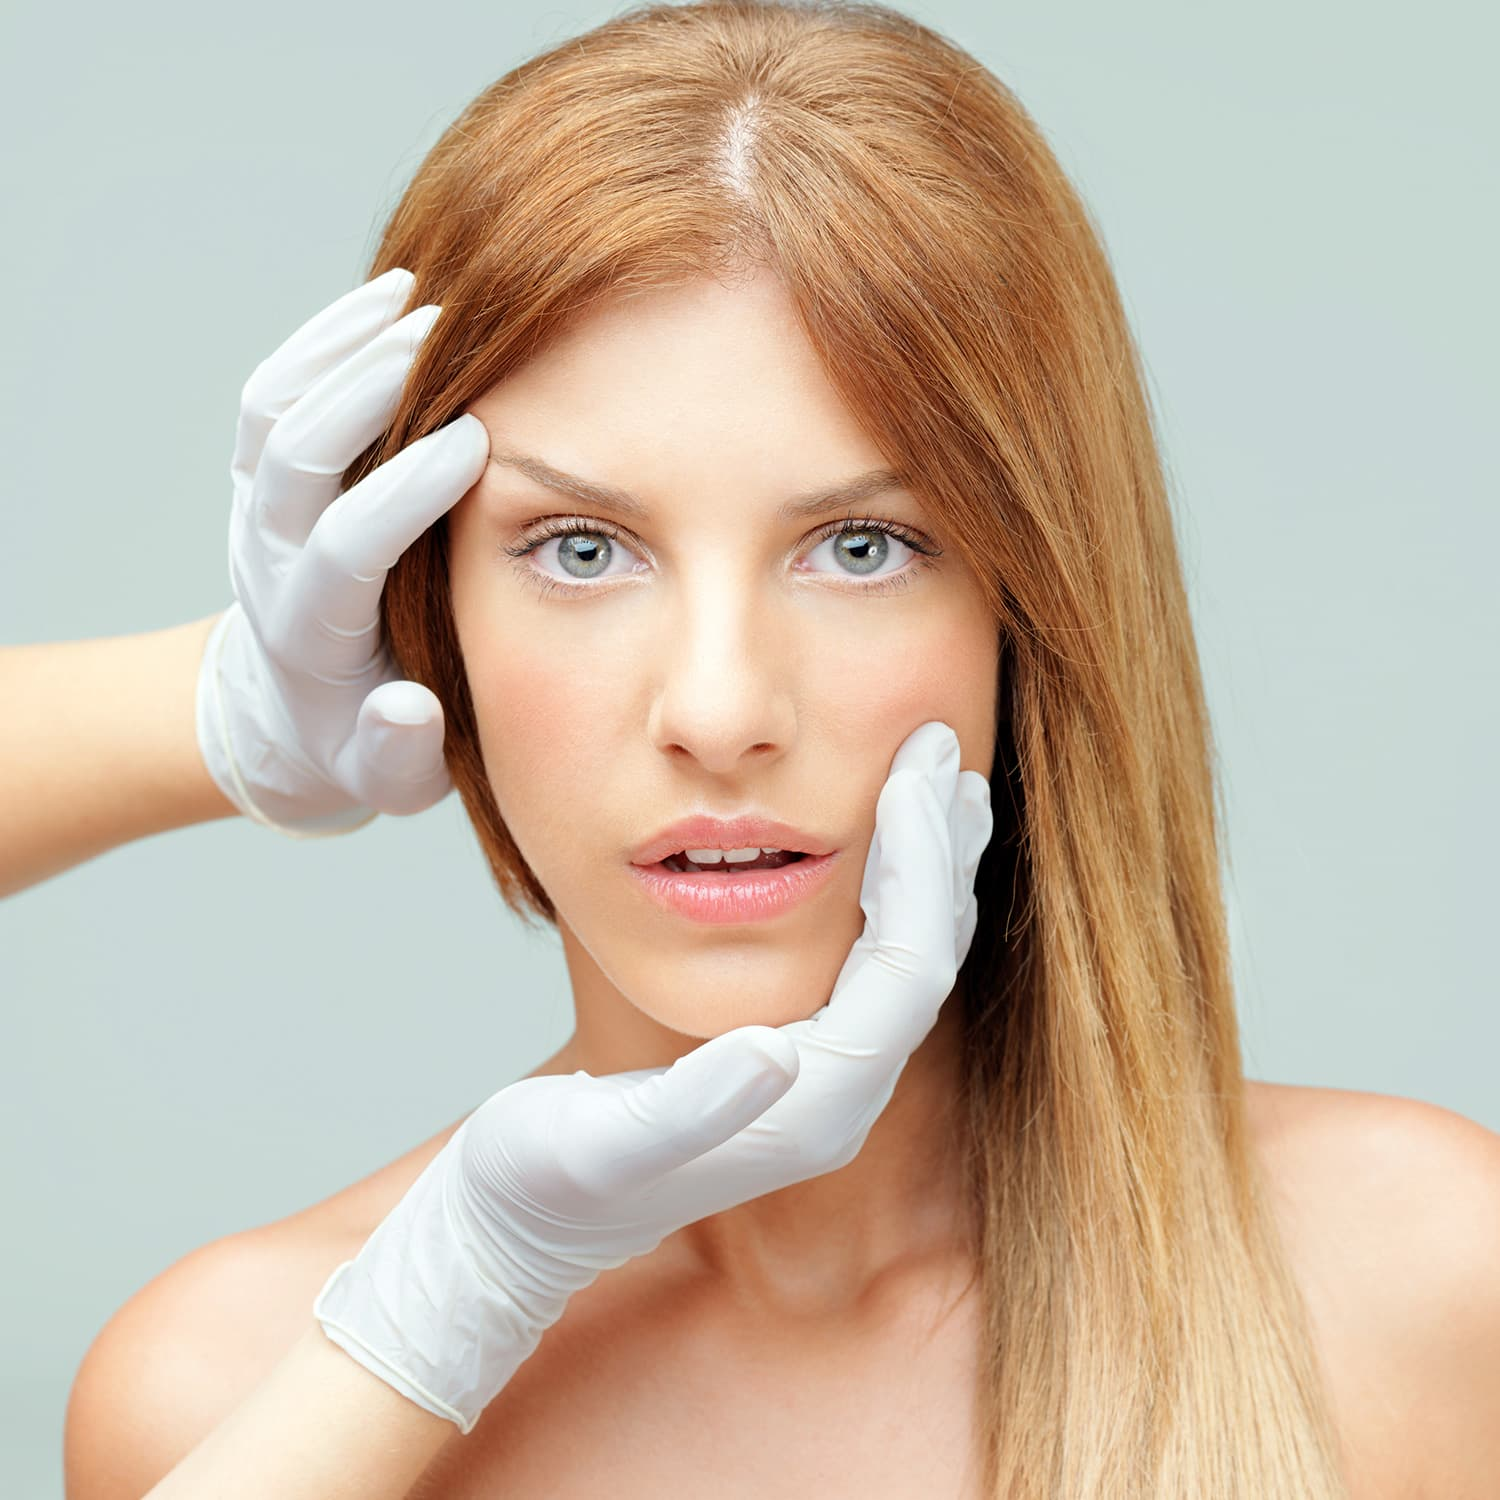 risks of cosmetic plastic surgery 1